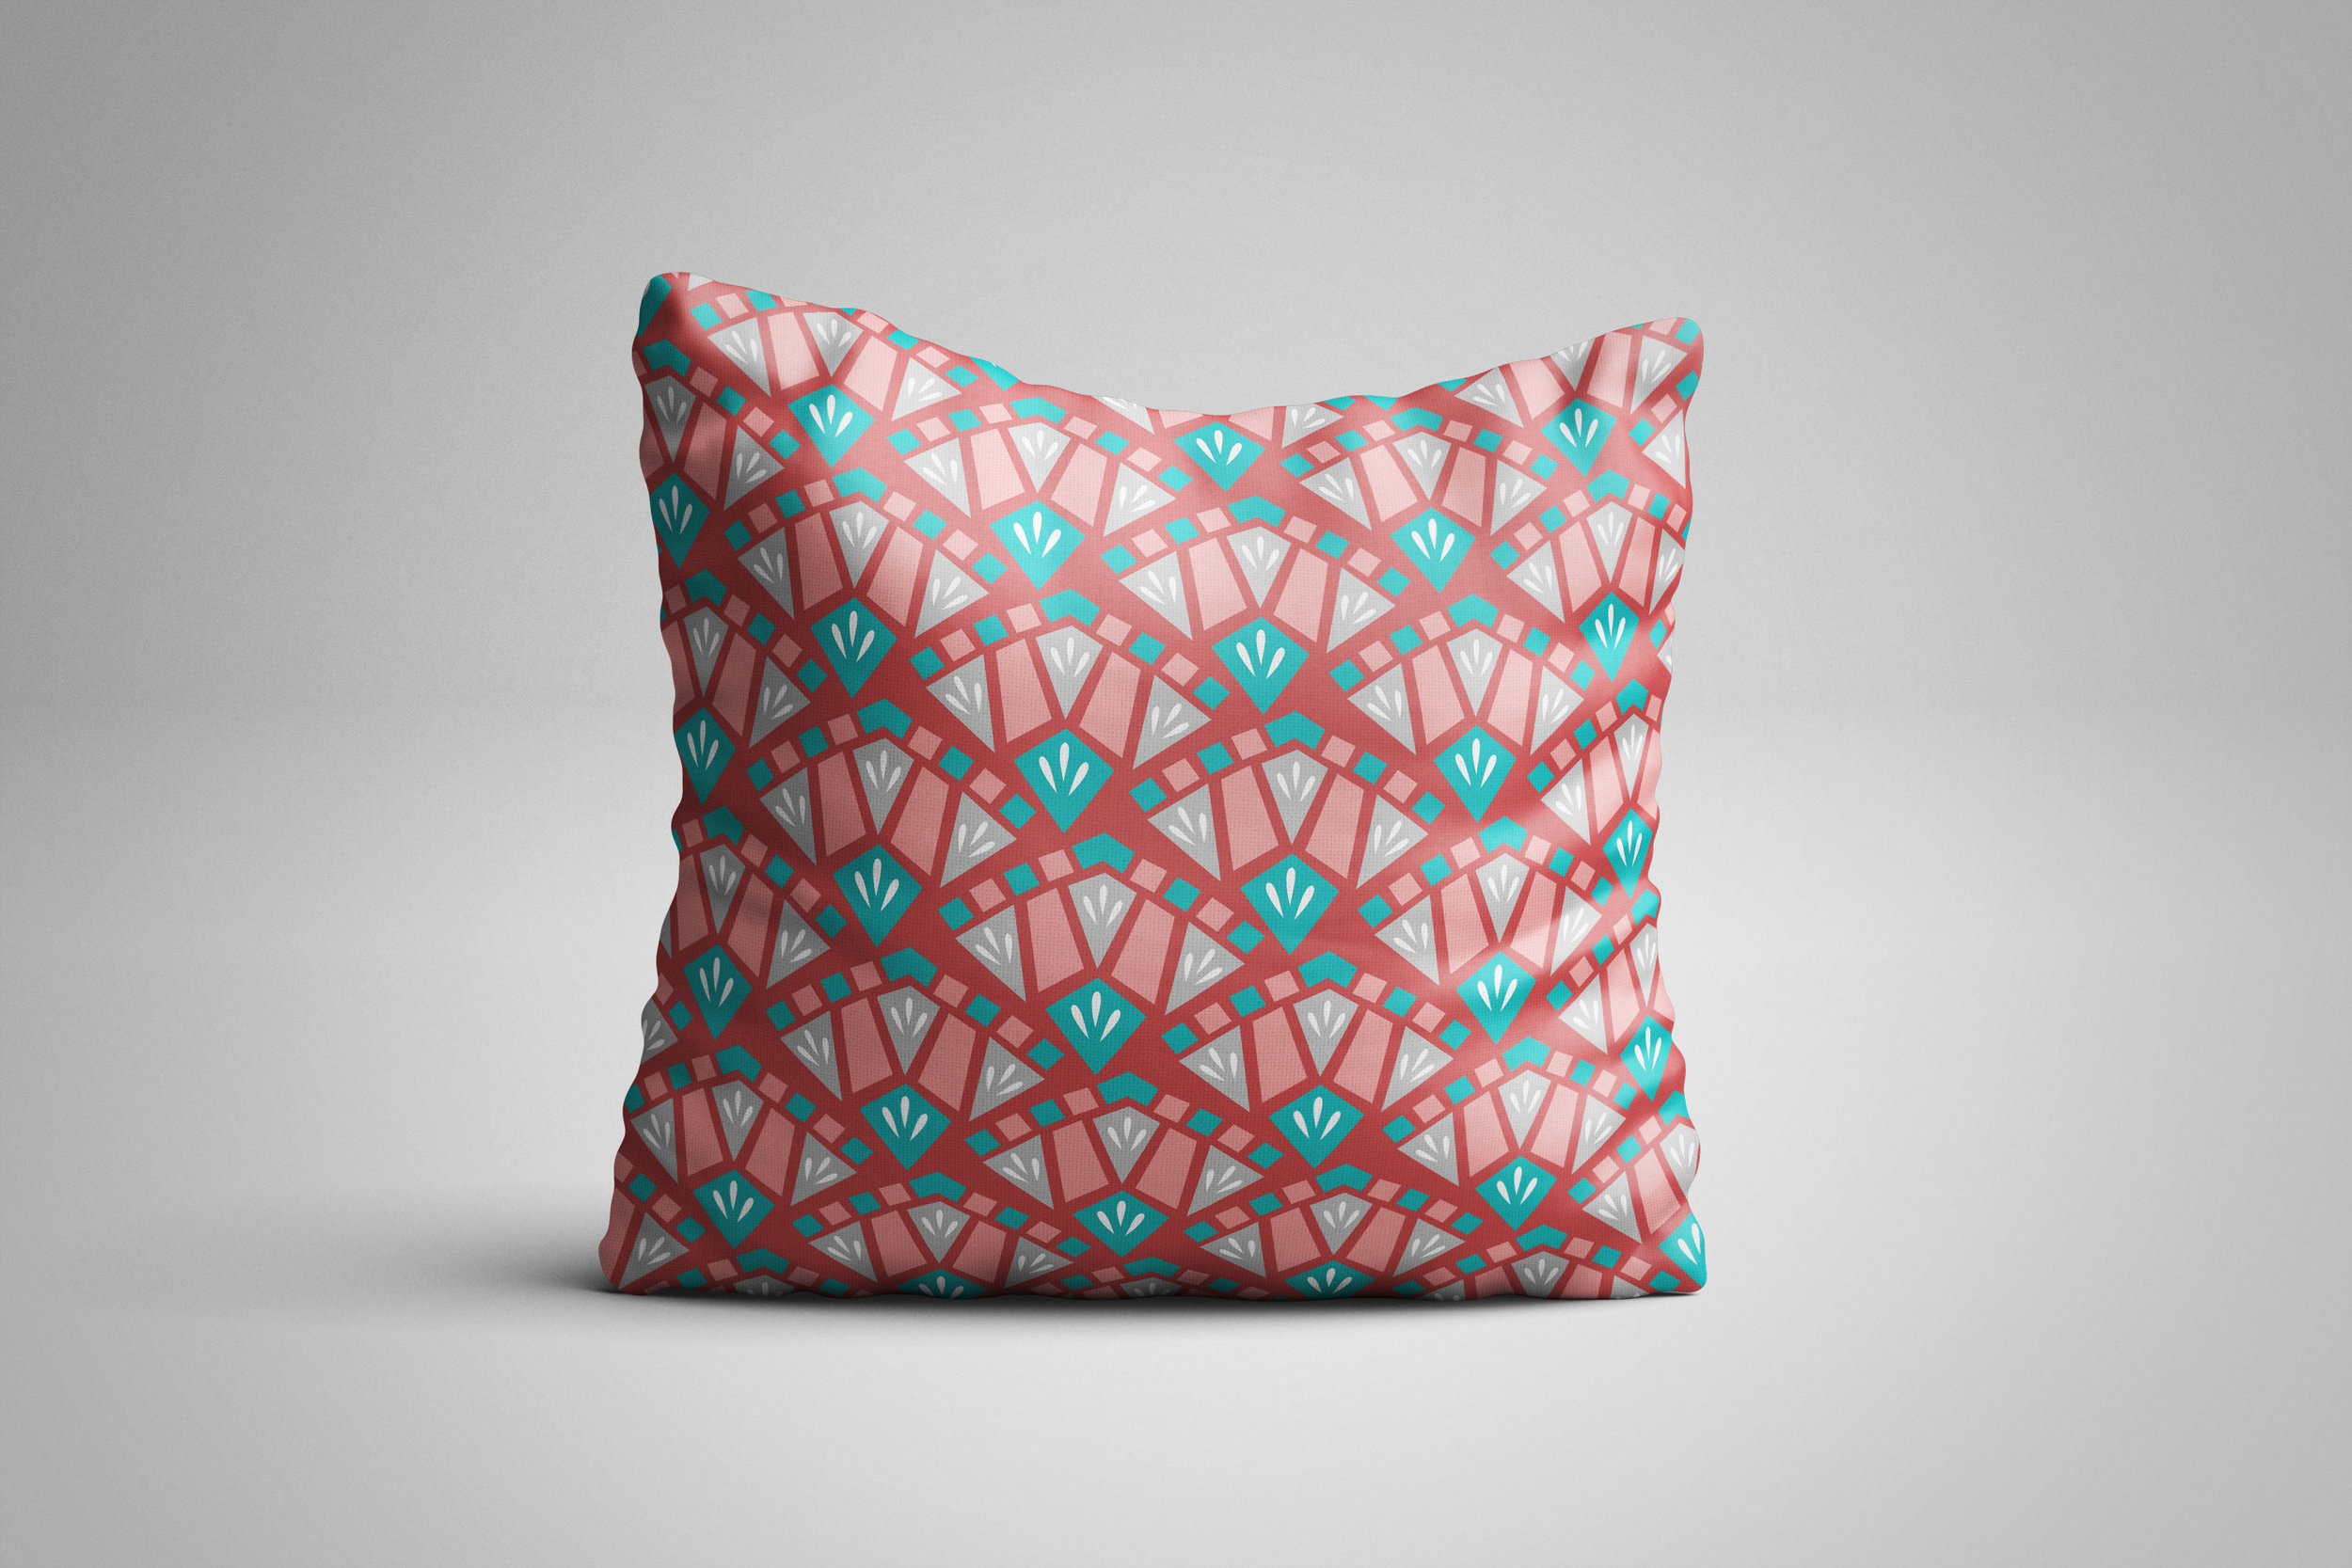 Pillow-mock-up2.jpg